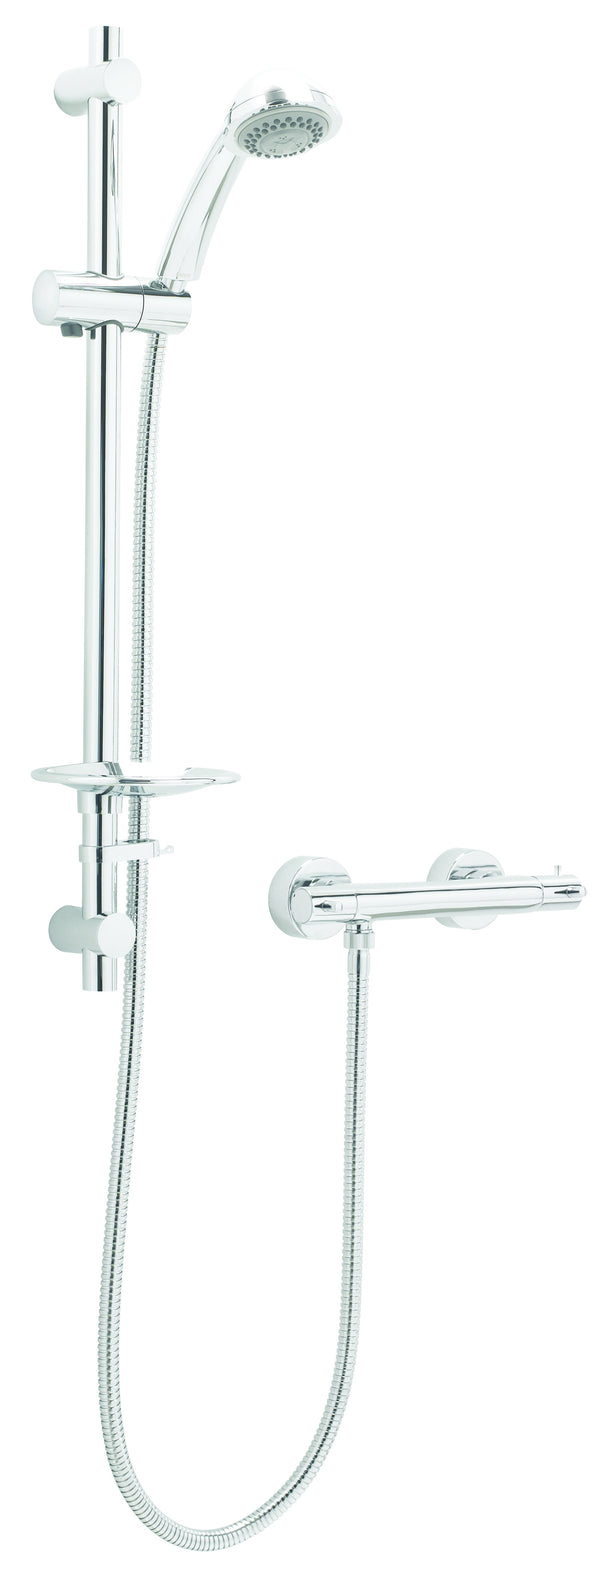 VISION BAR SHOWER WITH MULTI MODE KIT